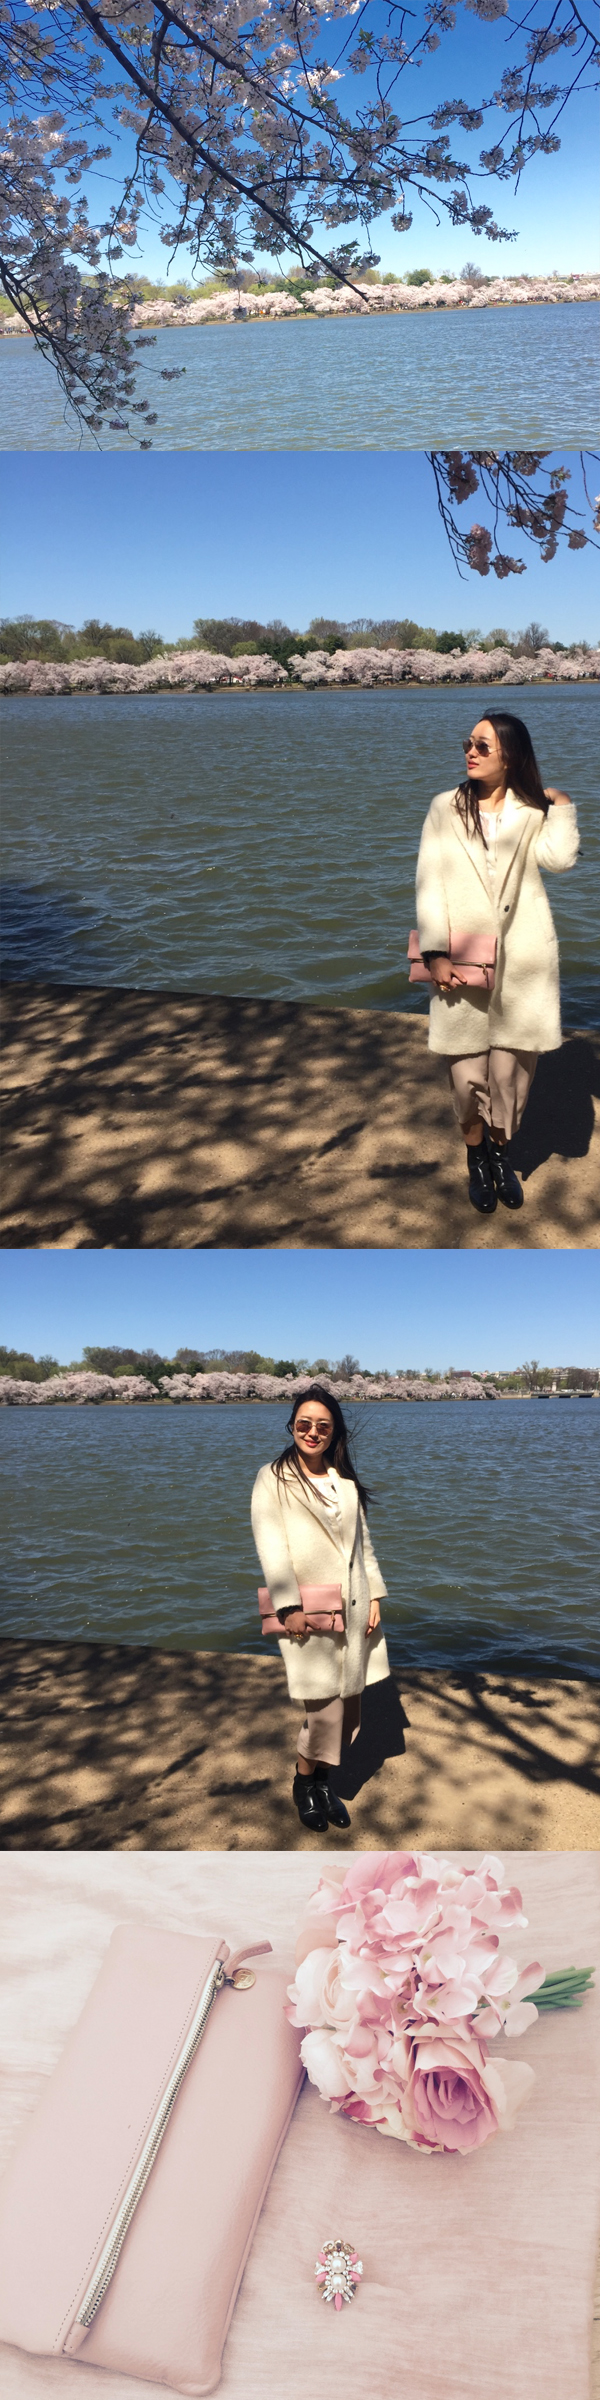 June Lemon Girl junelemongirl fashion blogger cherryblossom tidal basin cherry blossom 2016 washington dc